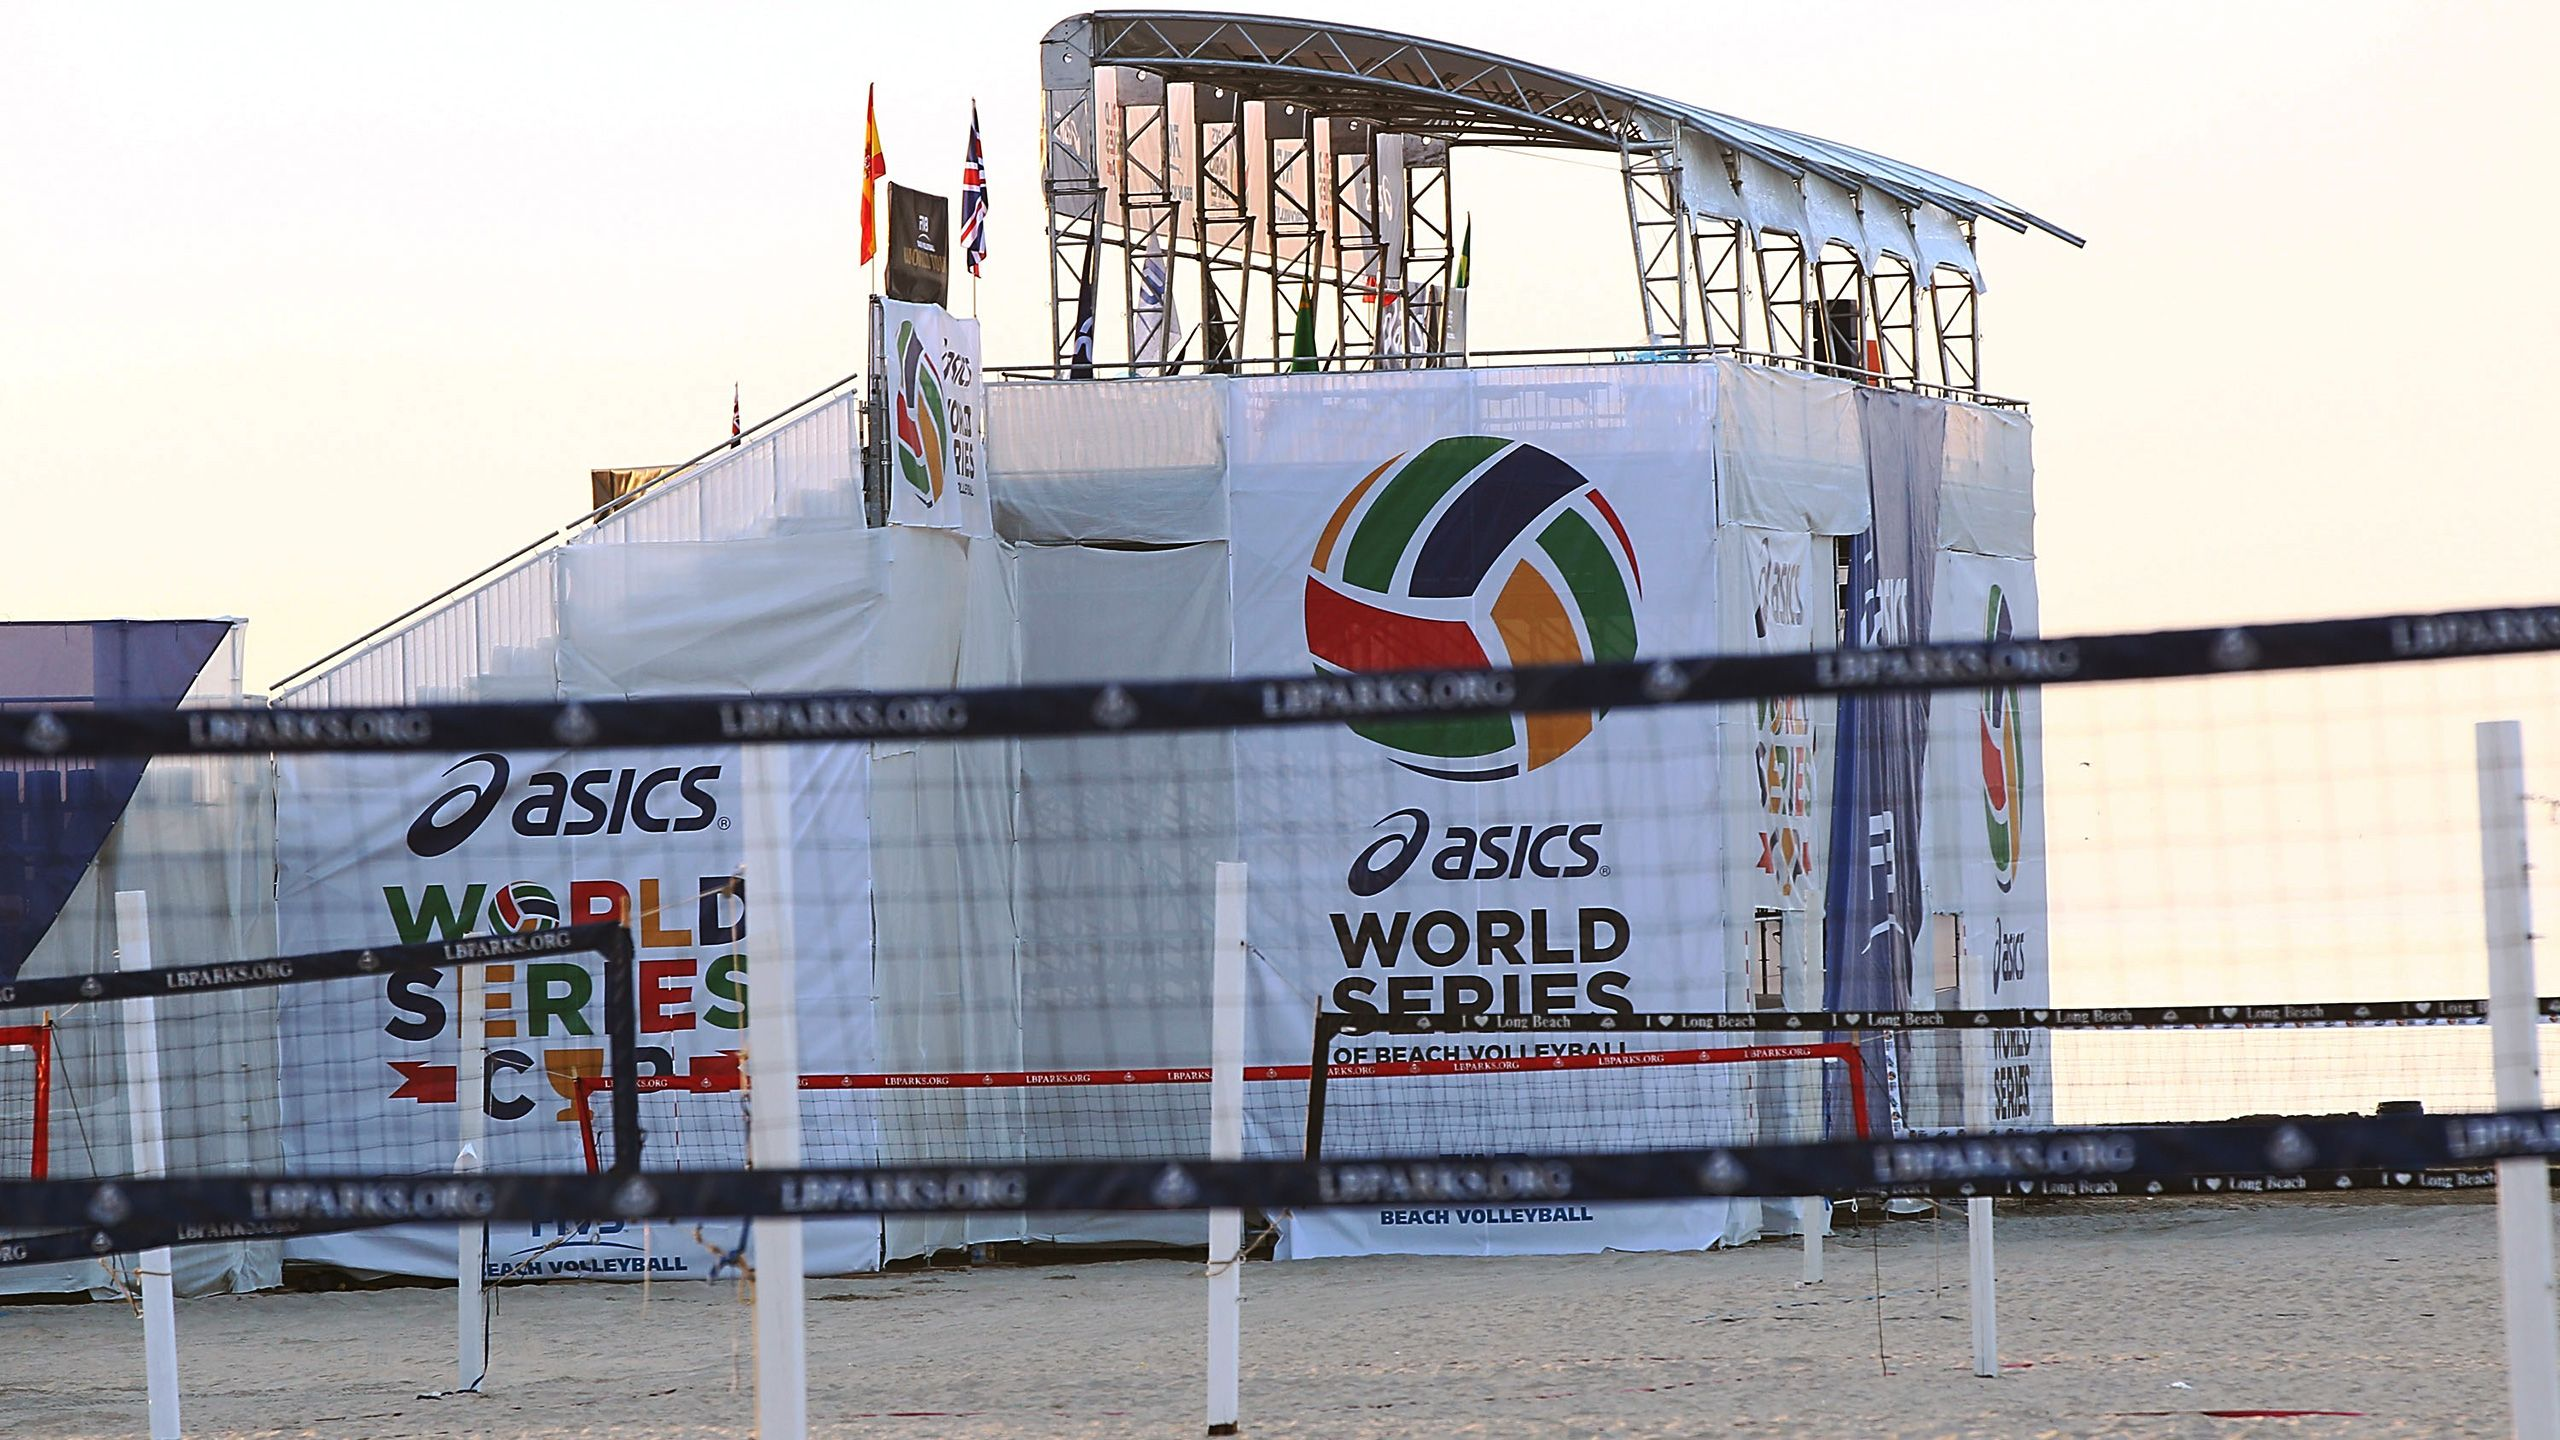 World Series of Beach Volleyball: USA vs. The World